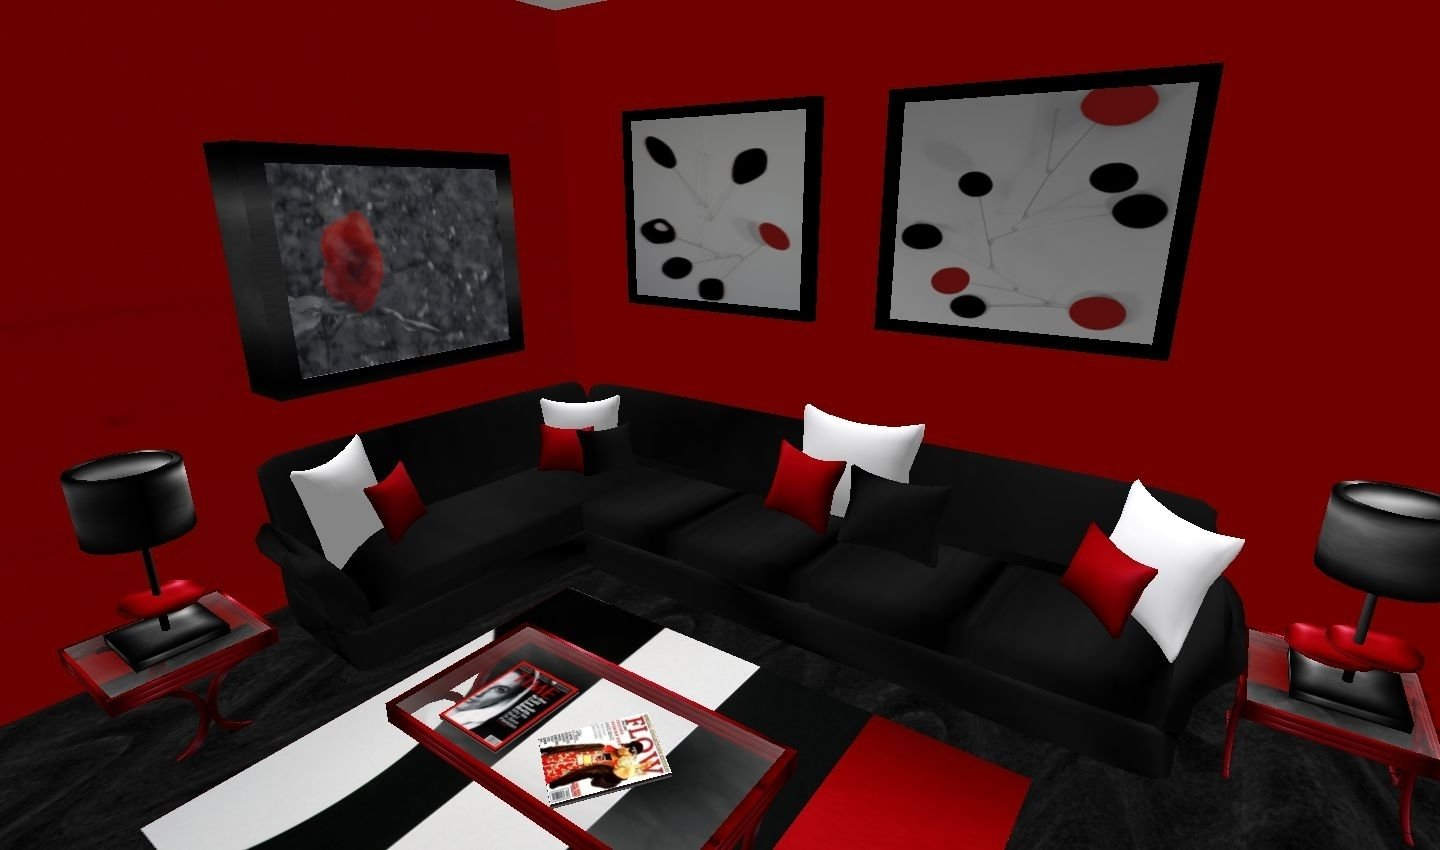 10 Beautiful Red And Black Living Room Ideas red black and white living room decorating ideas fresh with red 2020